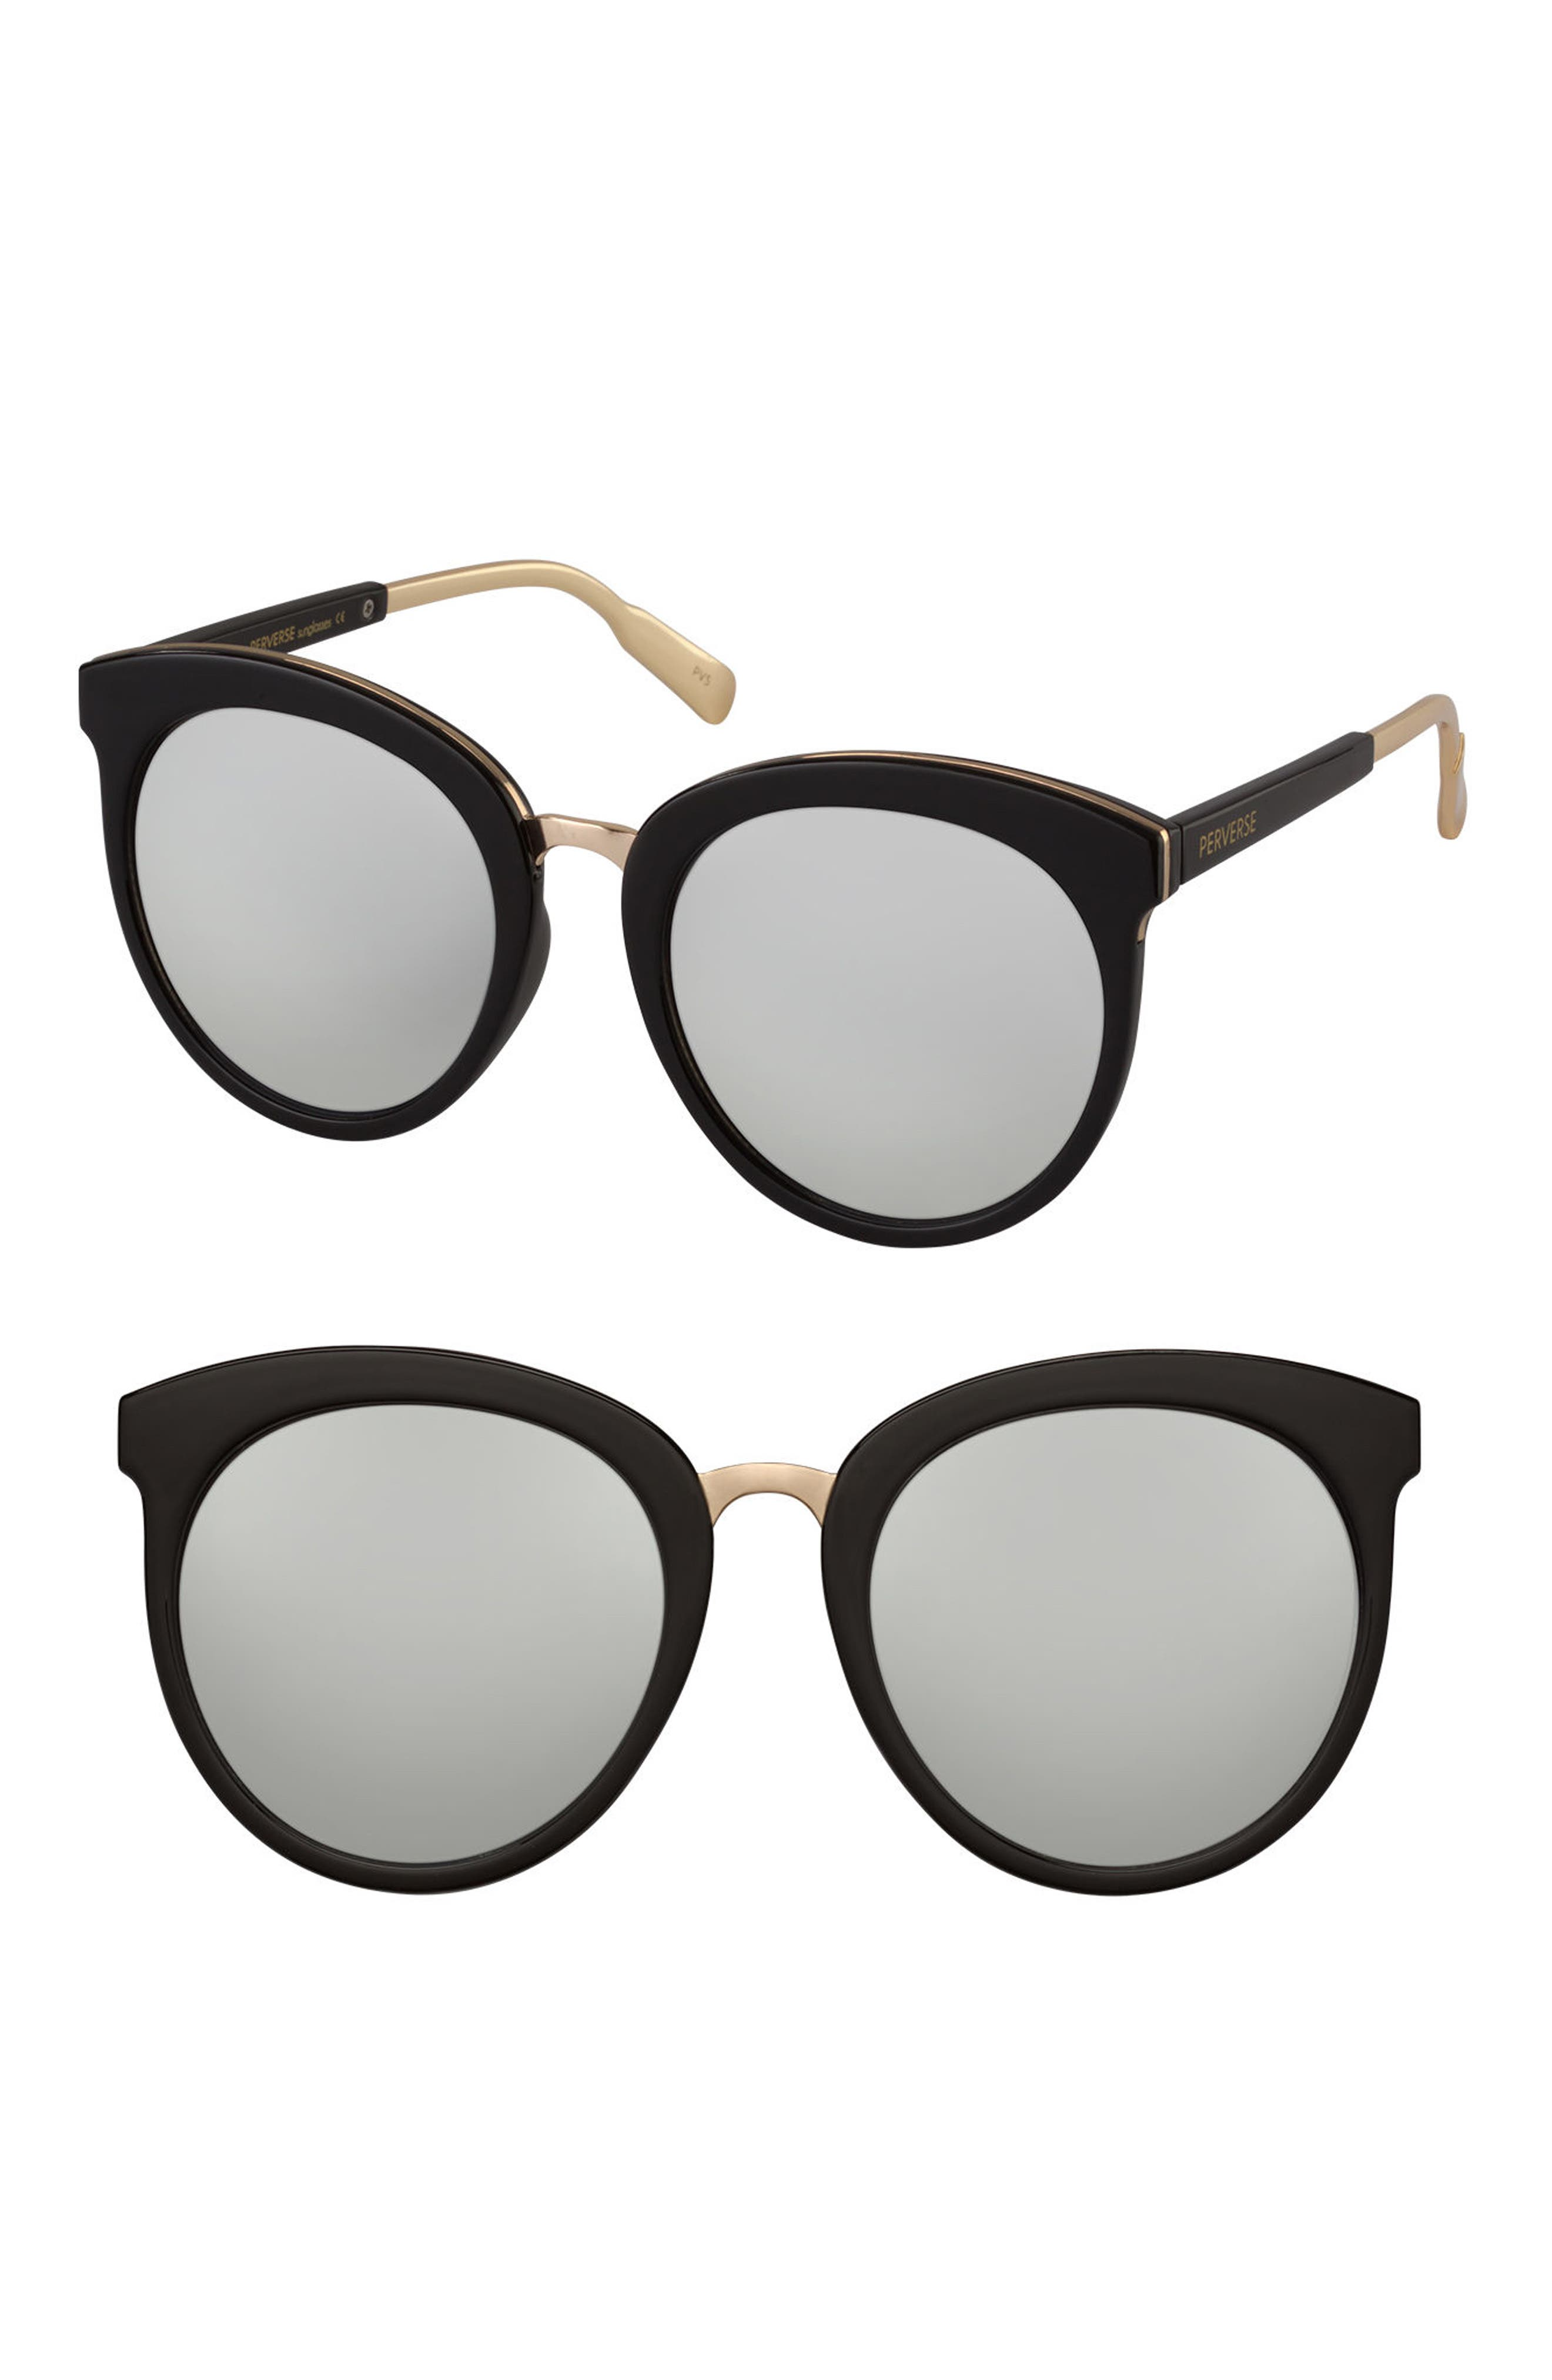 Luxe Sunglasses,                         Main,                         color, 004